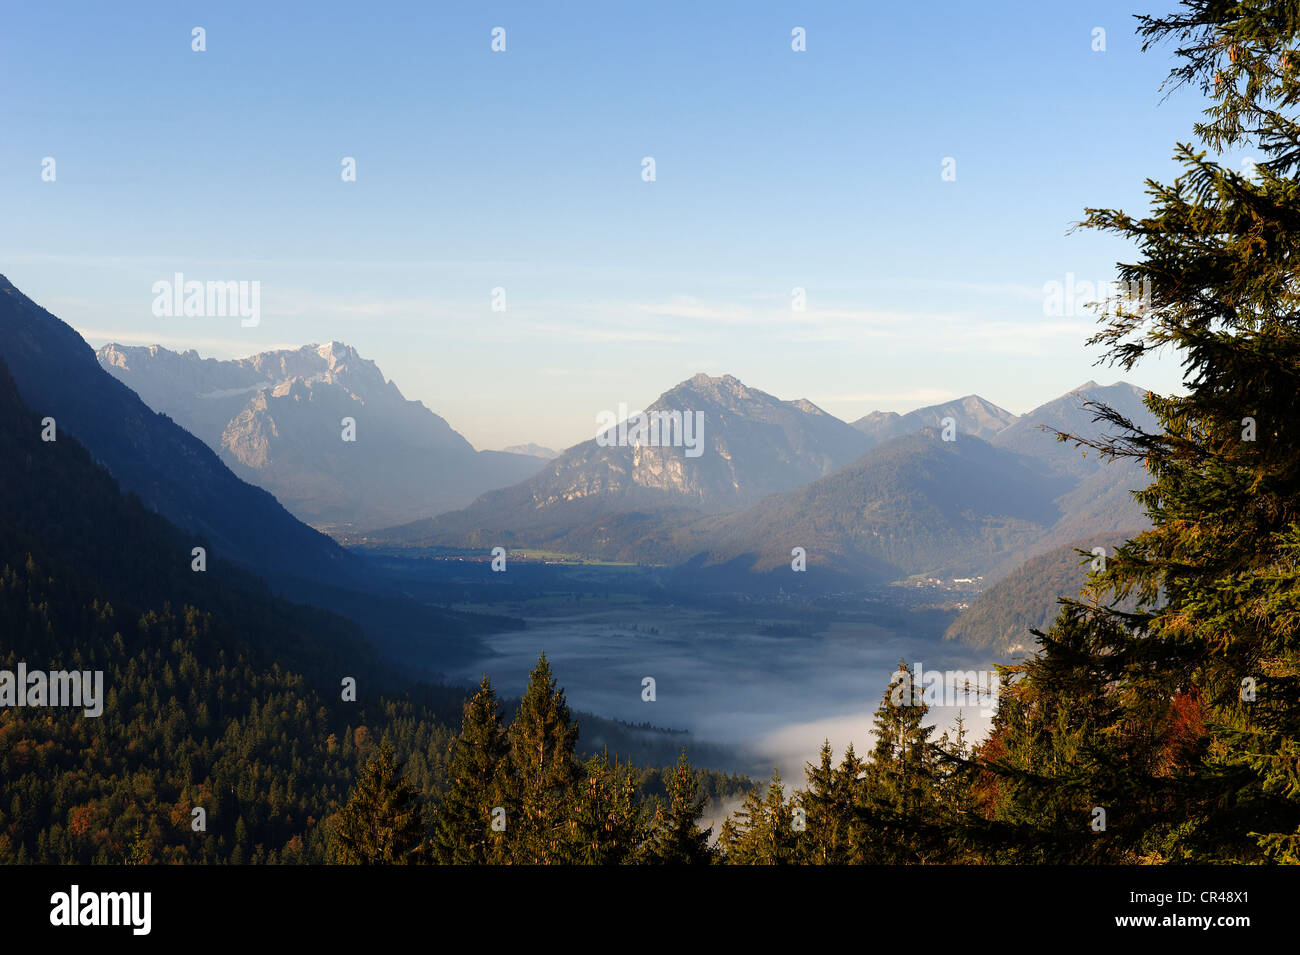 From Osterfeuerkopf, Osterfeuerspitze hill near Eschenlohe, inversion, views across the foggy Loisachtal vally with - Stock Image